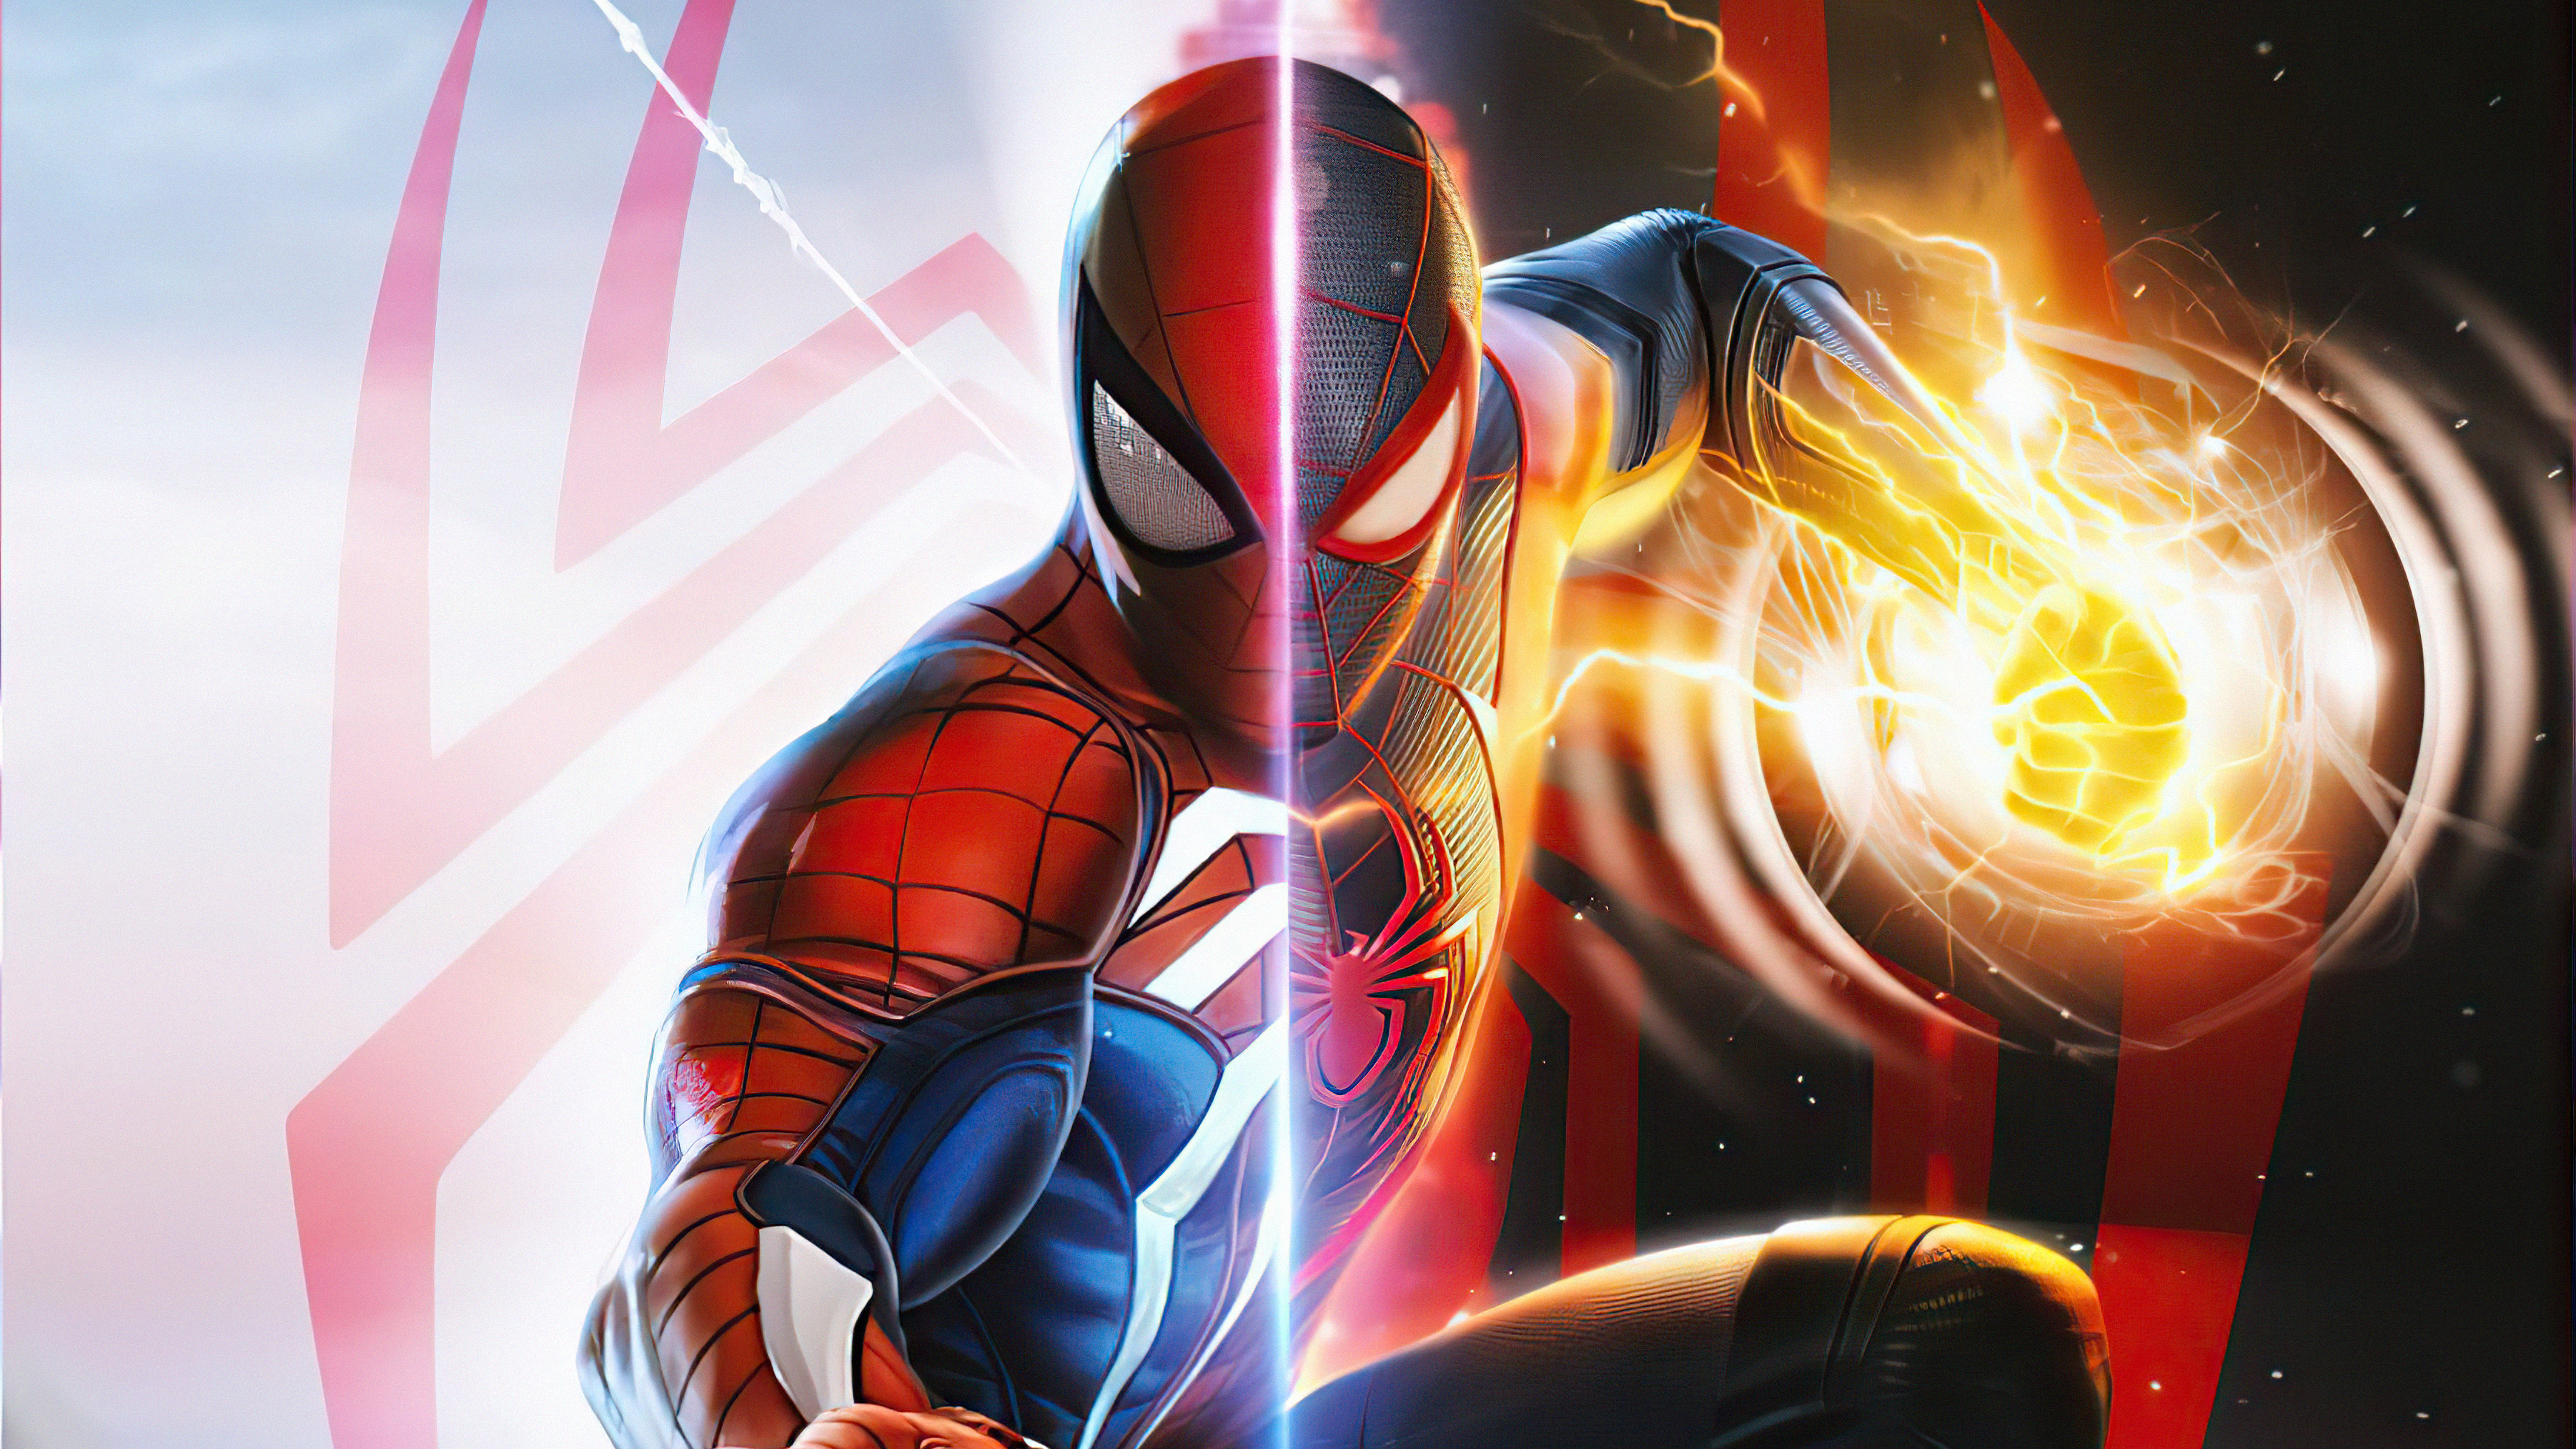 Wallpaper Spiderman and Miles Morales